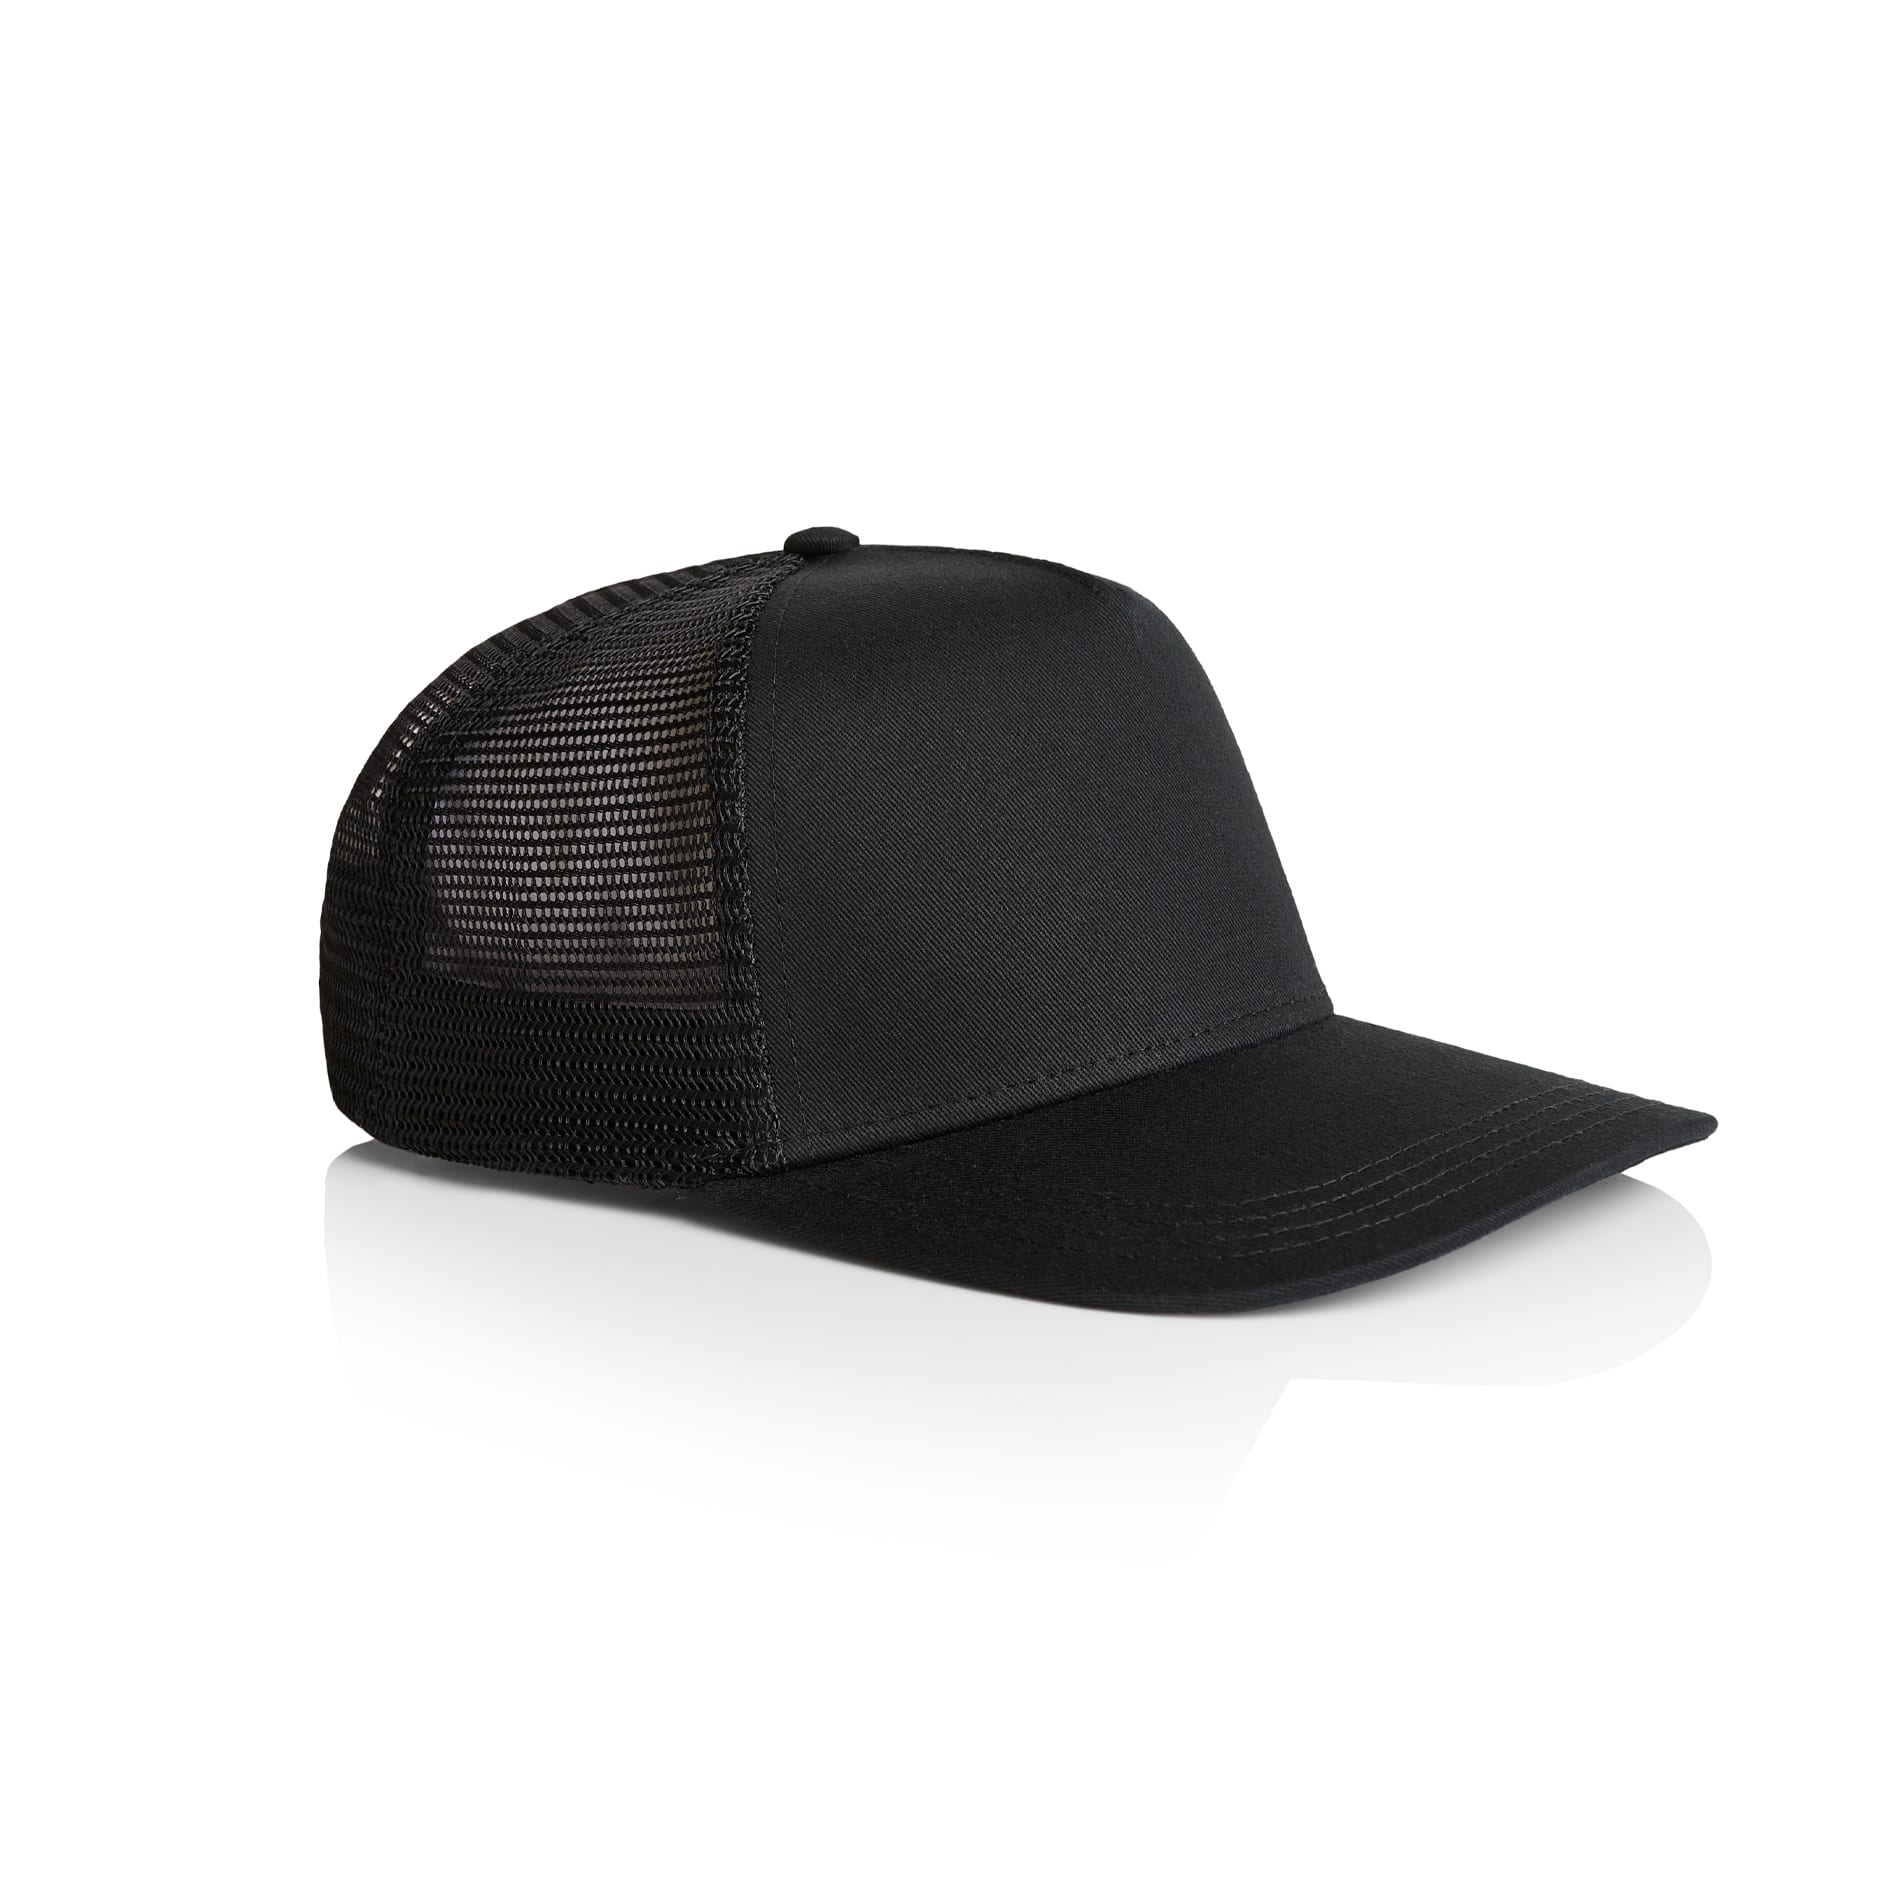 AS 1108 Trucker Cap